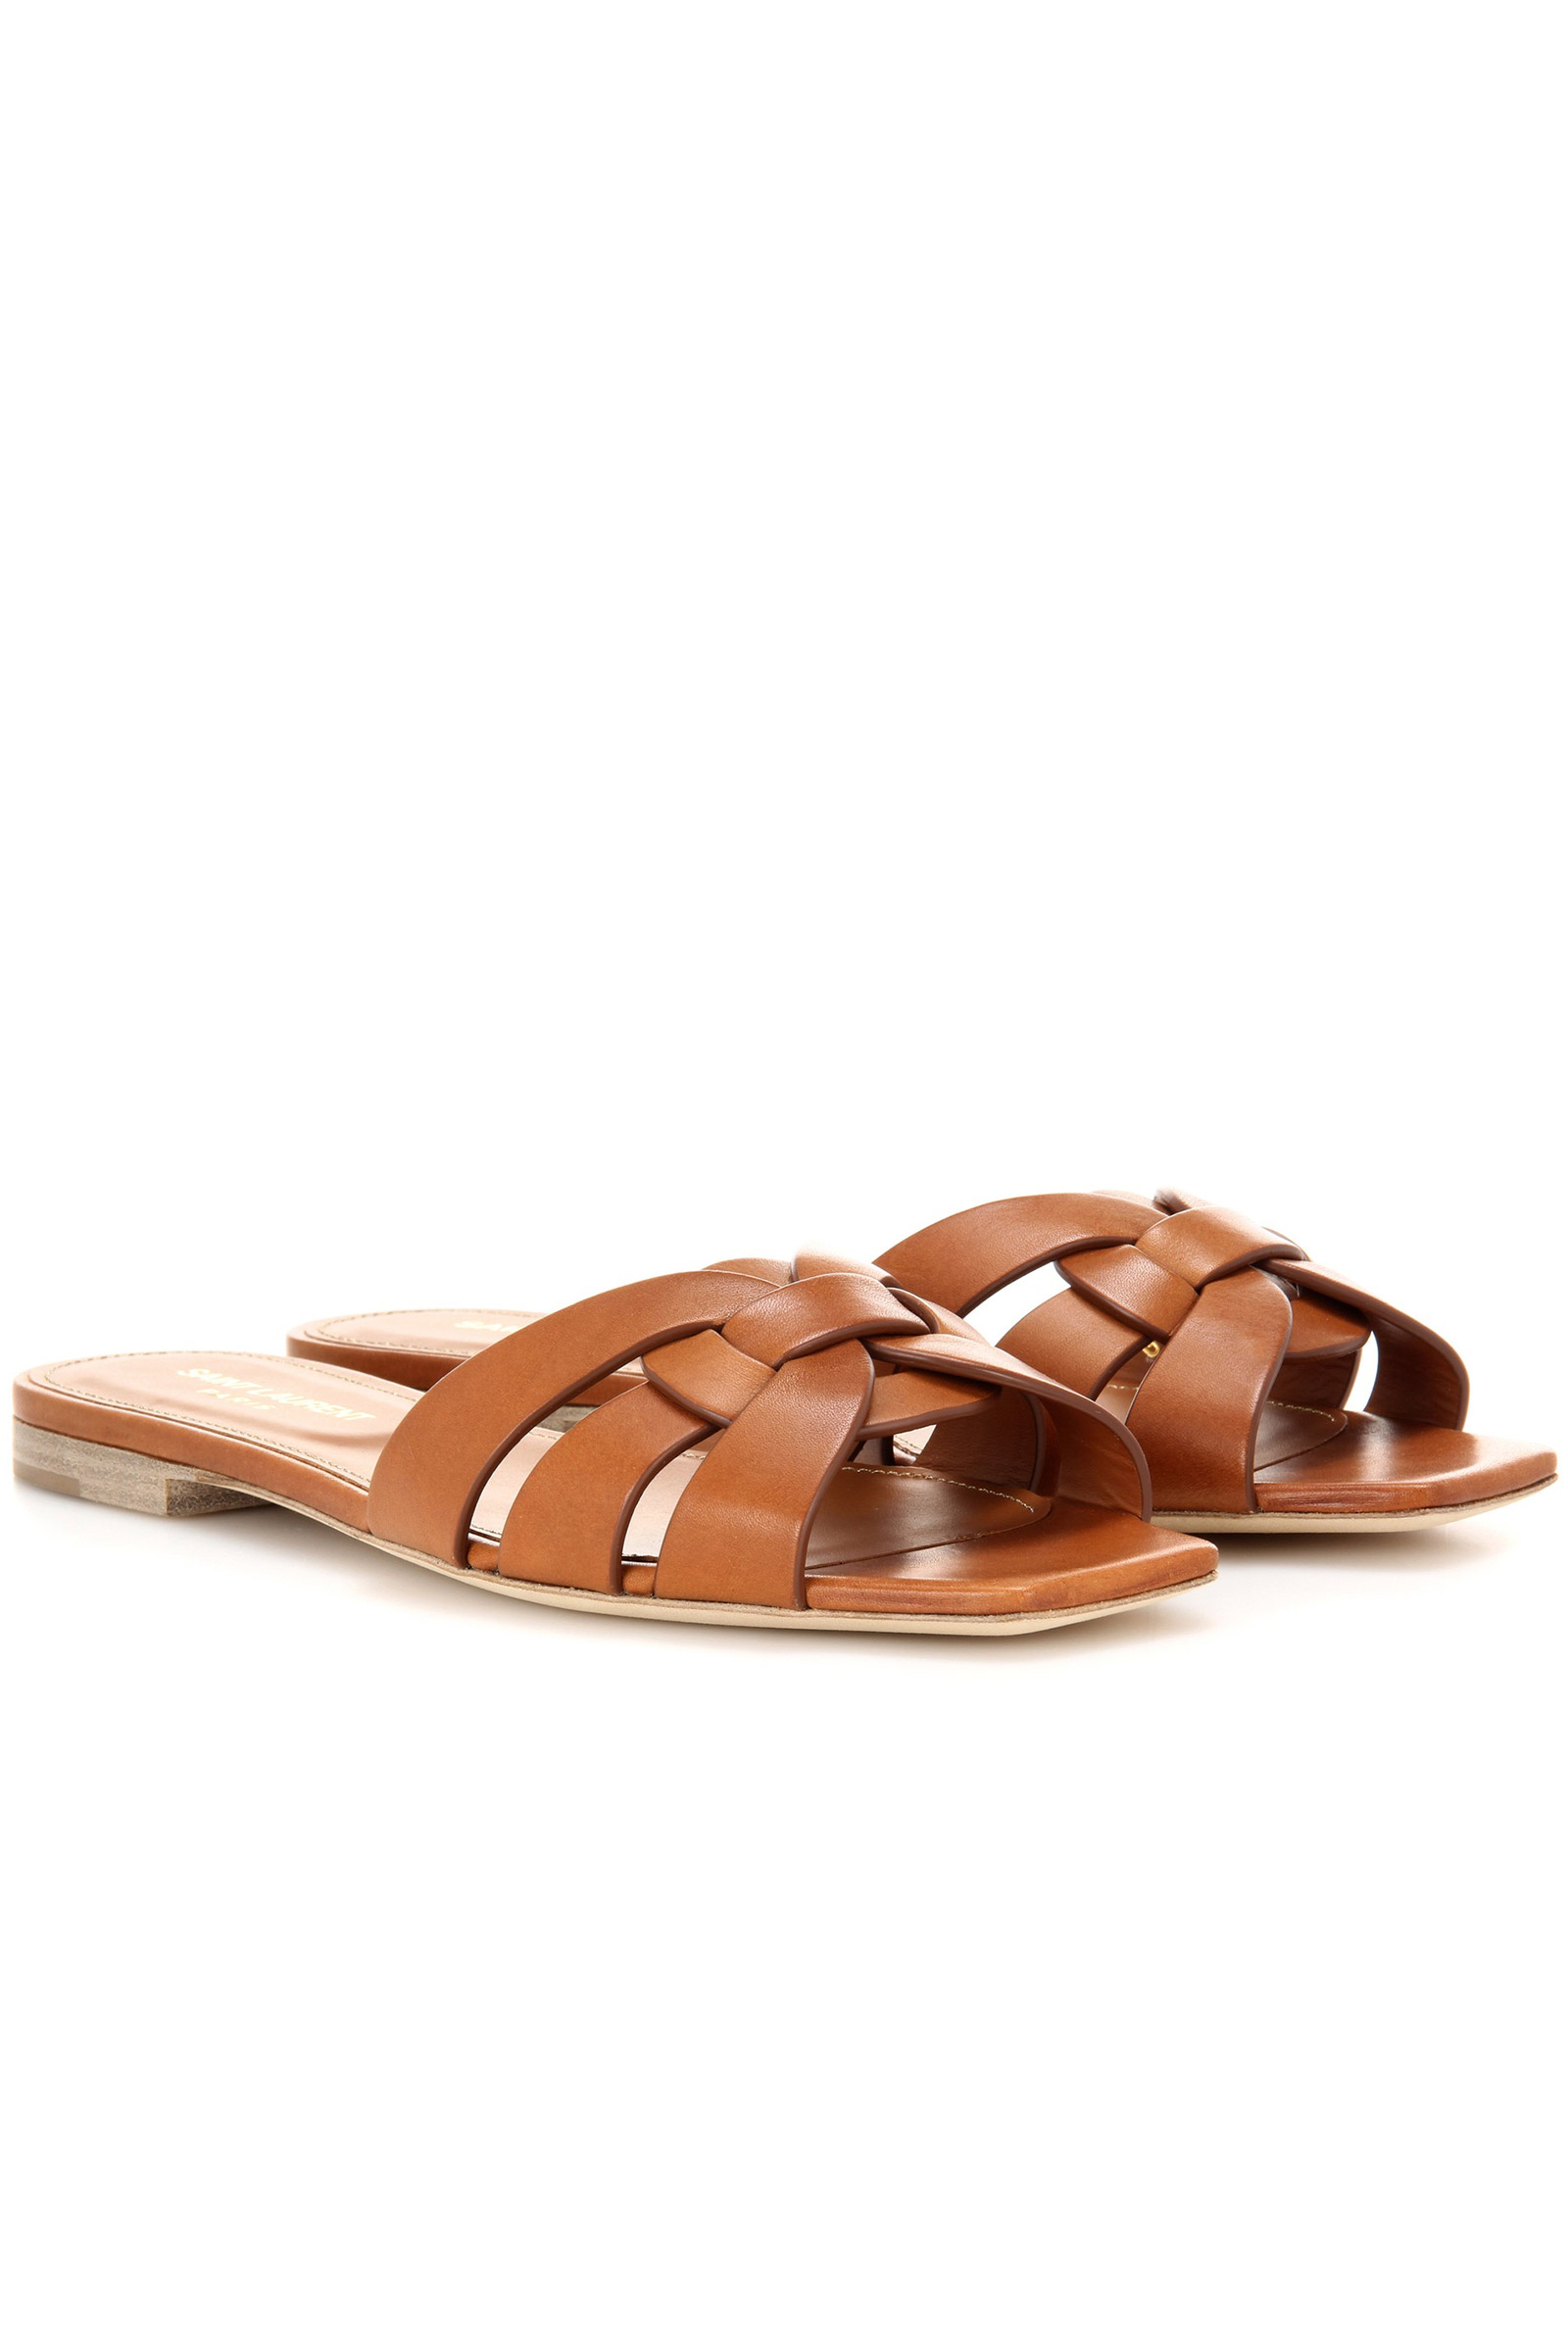 Click to Buy Saint Laurent Nu Pieds 05 Leather Sandals